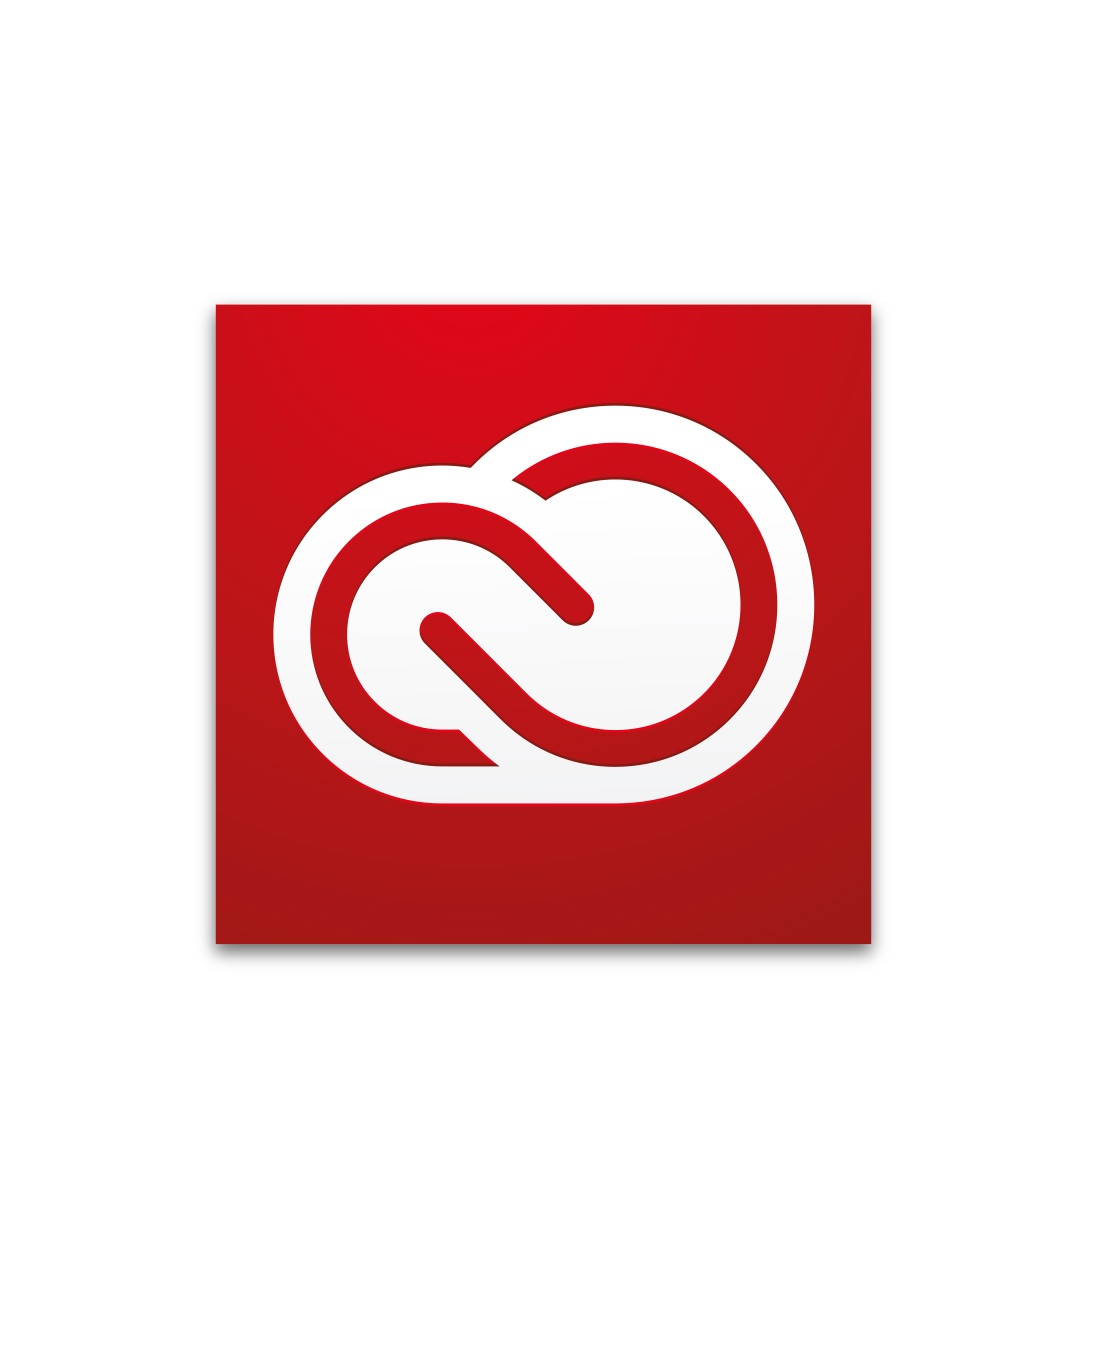 Adobe Creative Cloud for Teams All Apps VIP Lizenz 1 Jahr Subscription Download Education Win/Mac, Multilingual (10-49 Lizenzen) (65272475BB02A12)